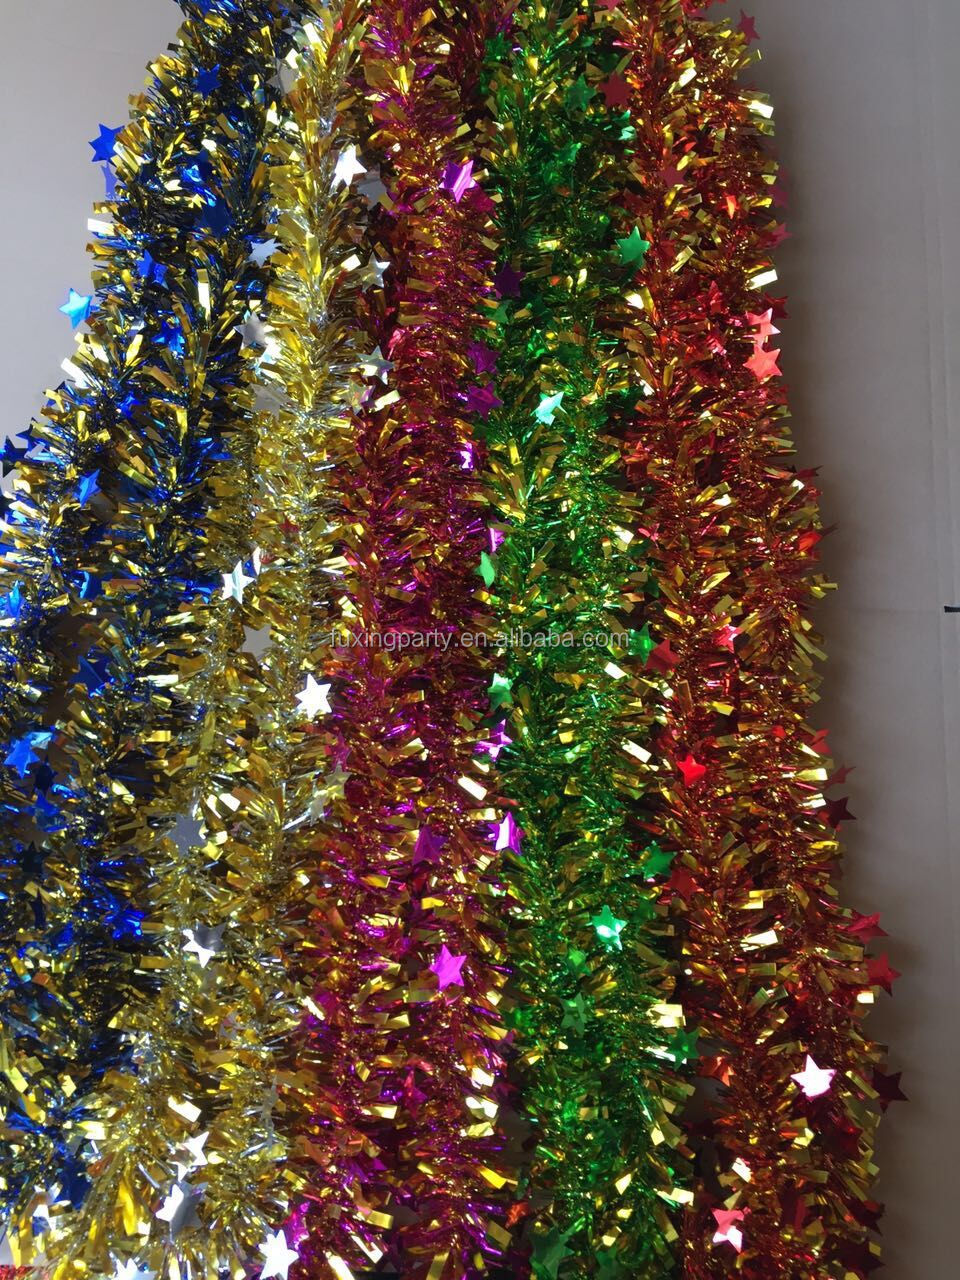 Christmas Tree Tinsel Garland Merry Christmas And Happy: how to decorate a christmas tree without tinsel